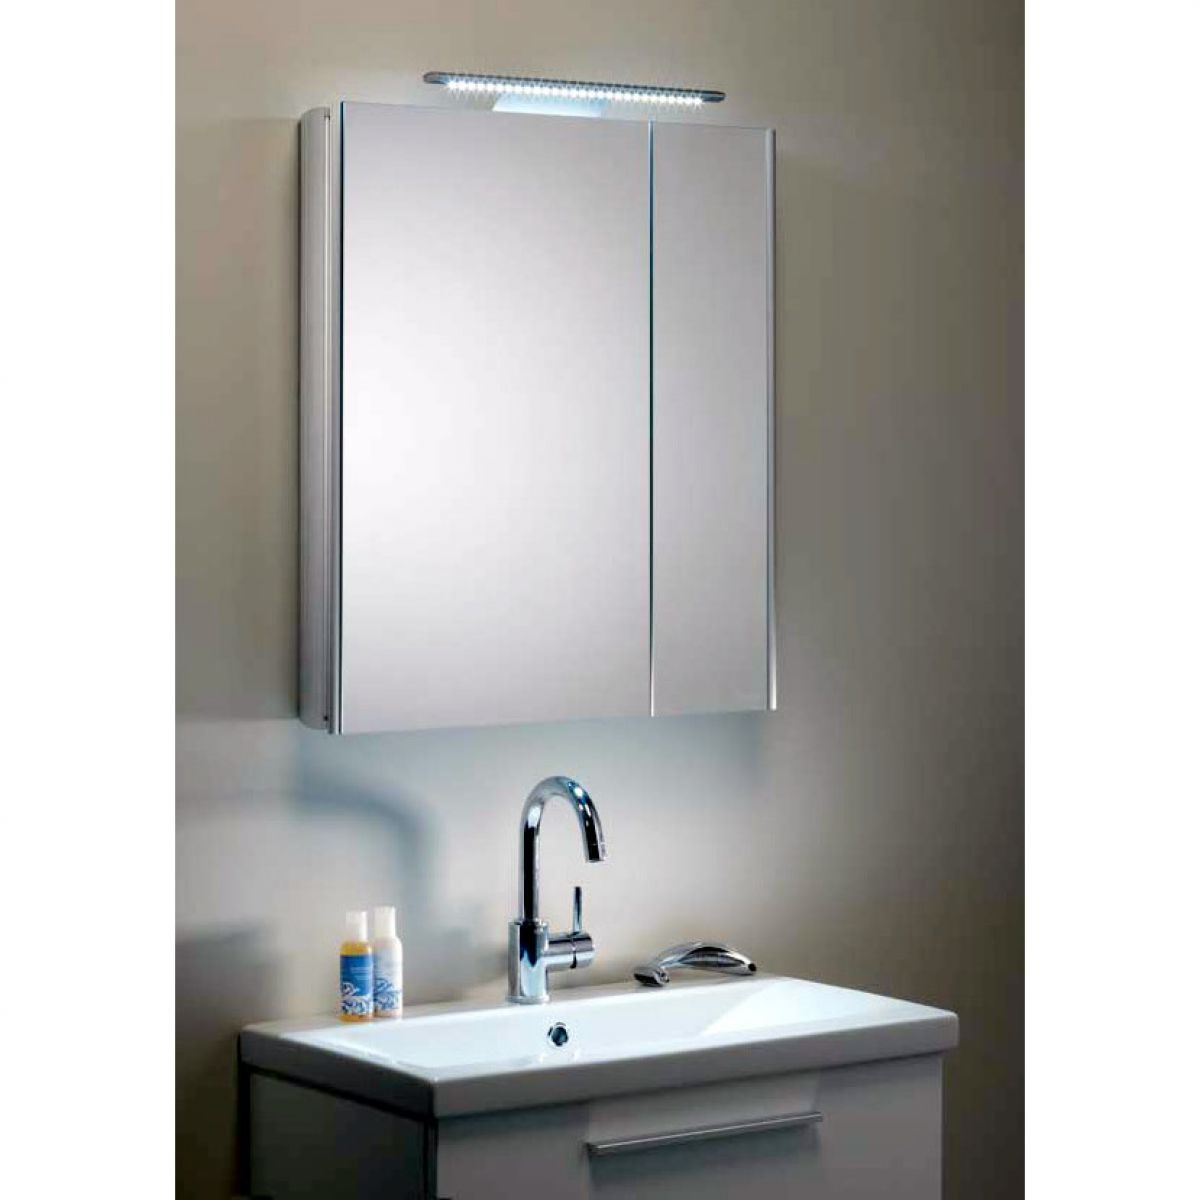 Roper rhodes ascension refine slimline split door cabinet for Bathroom furniture